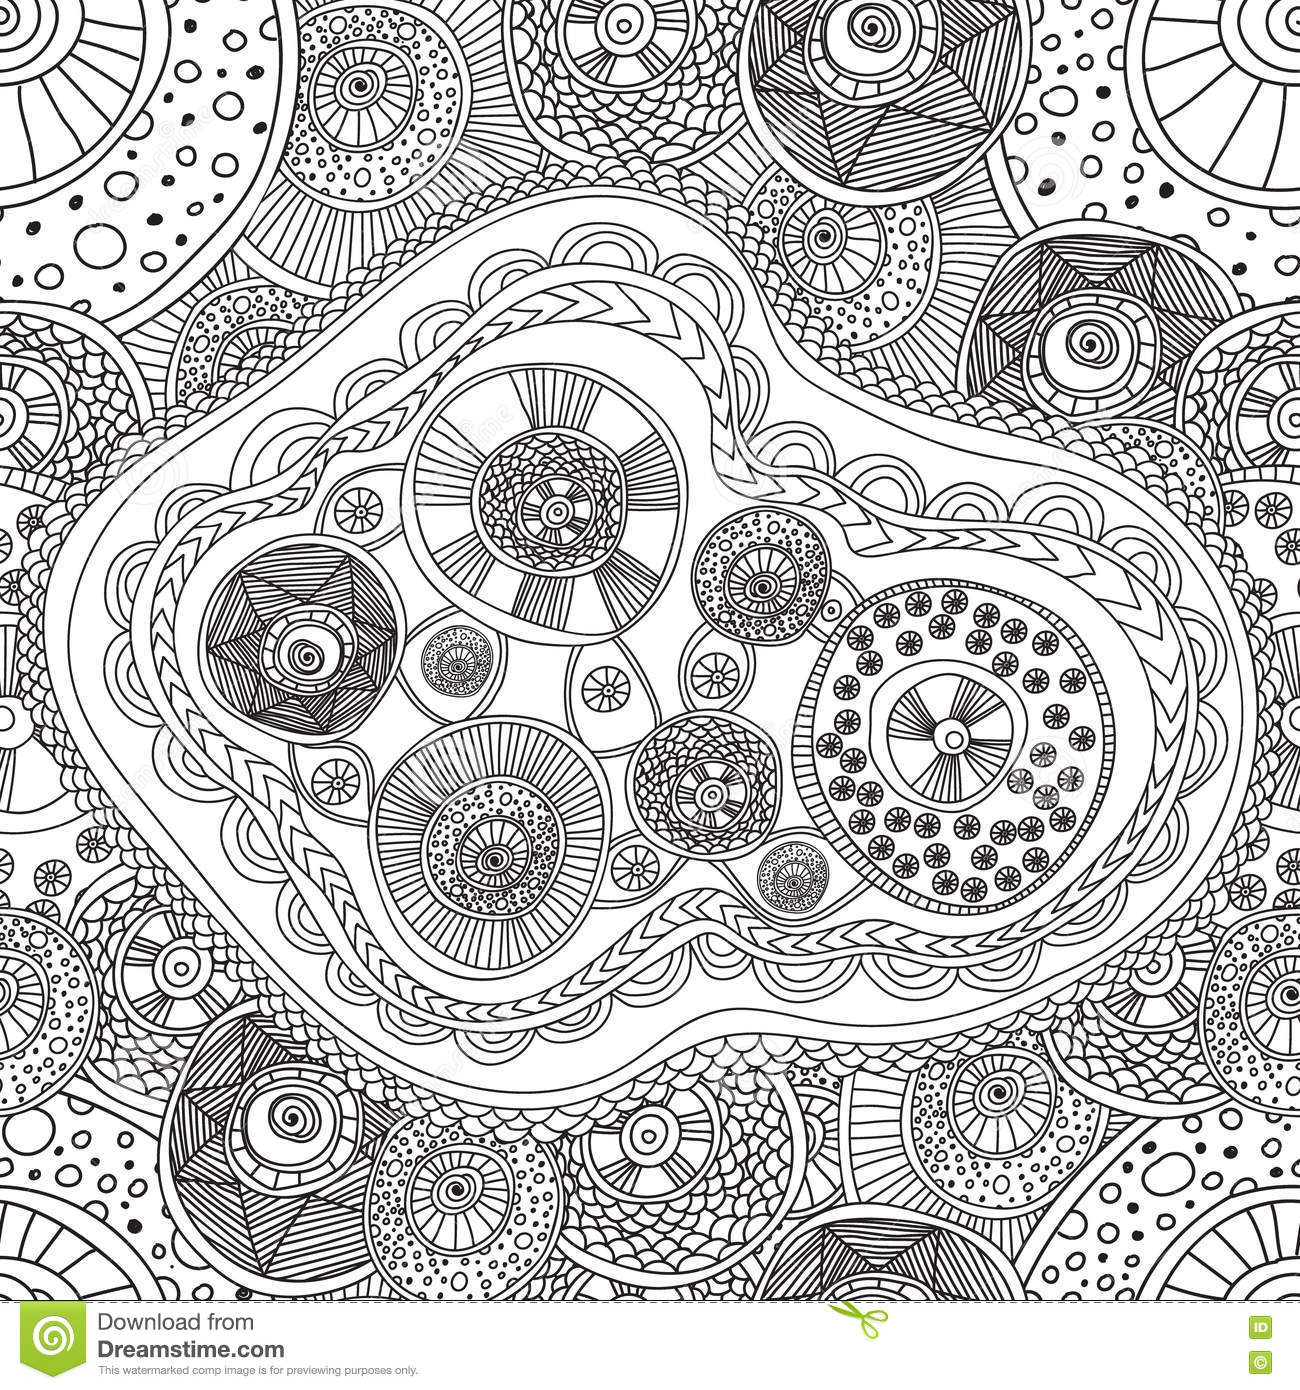 Download Coloring Pages For Adults BookSeamless Black And White Abstract Pattern With Circle Comp Add To Lightbox FREE DOWNLOAD